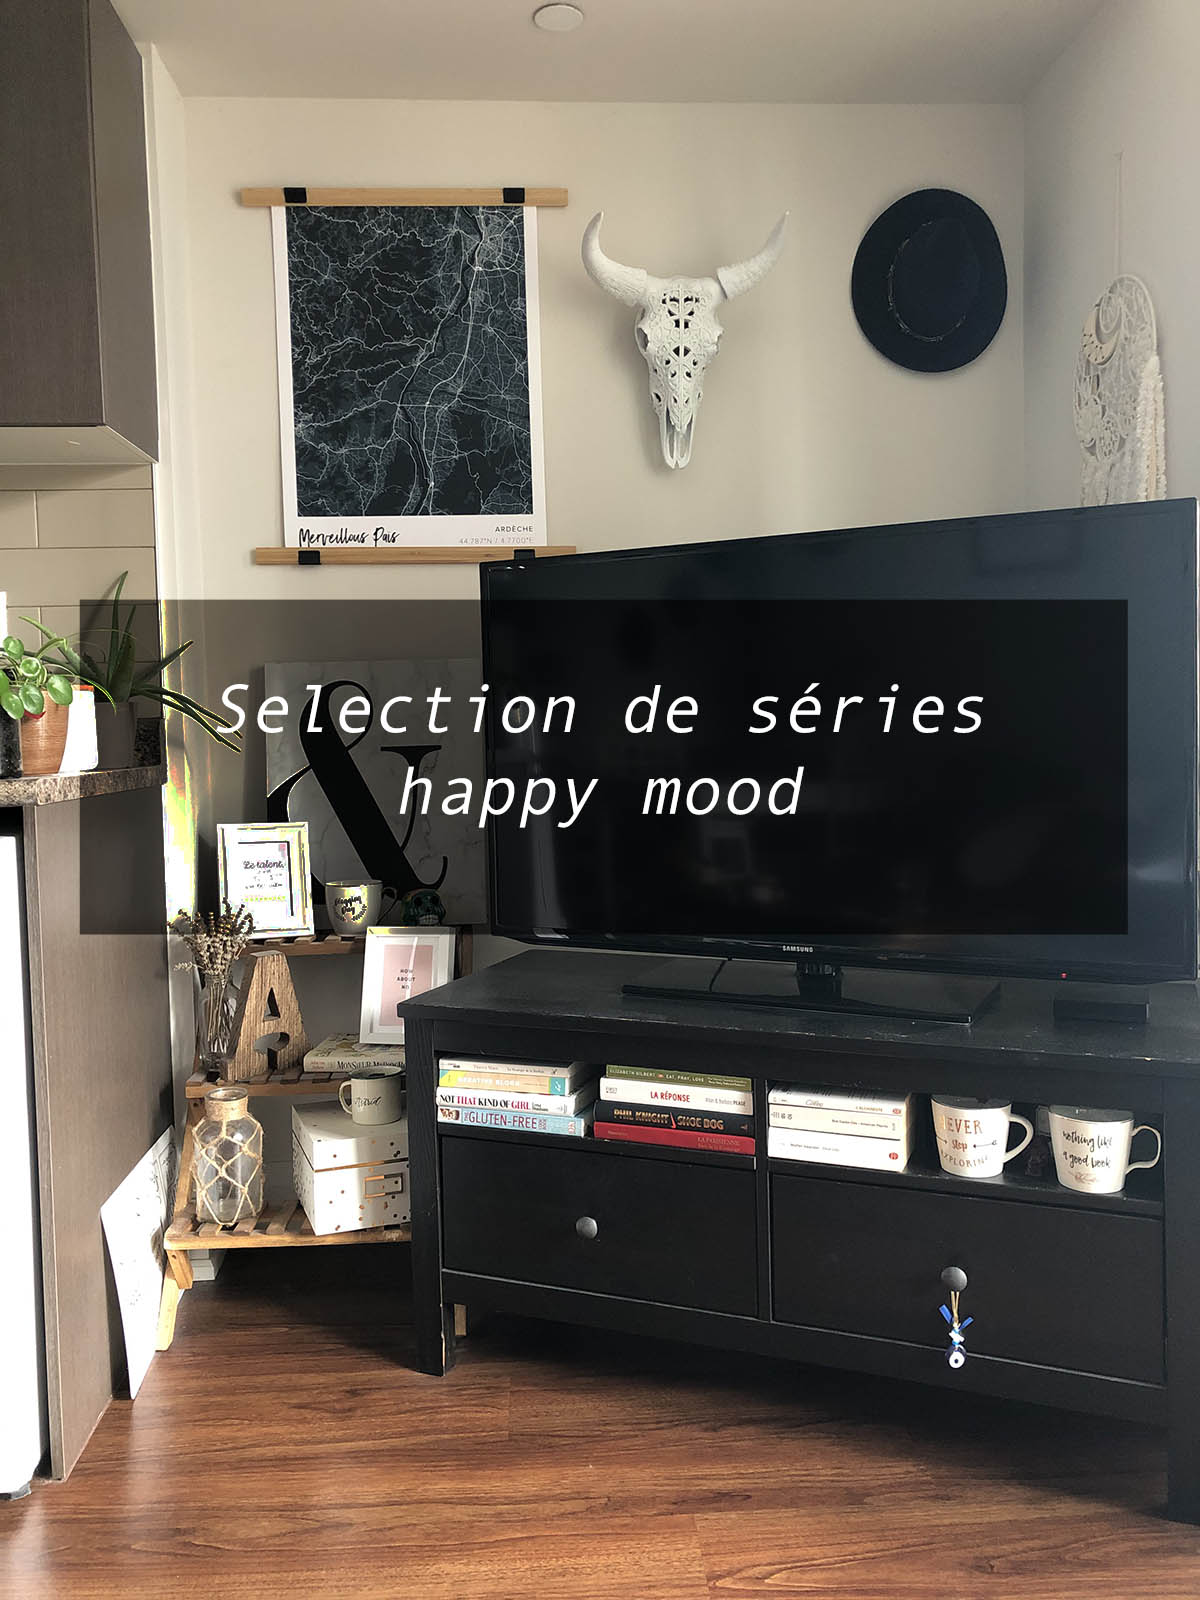 quoi-regarder-series-good-mood